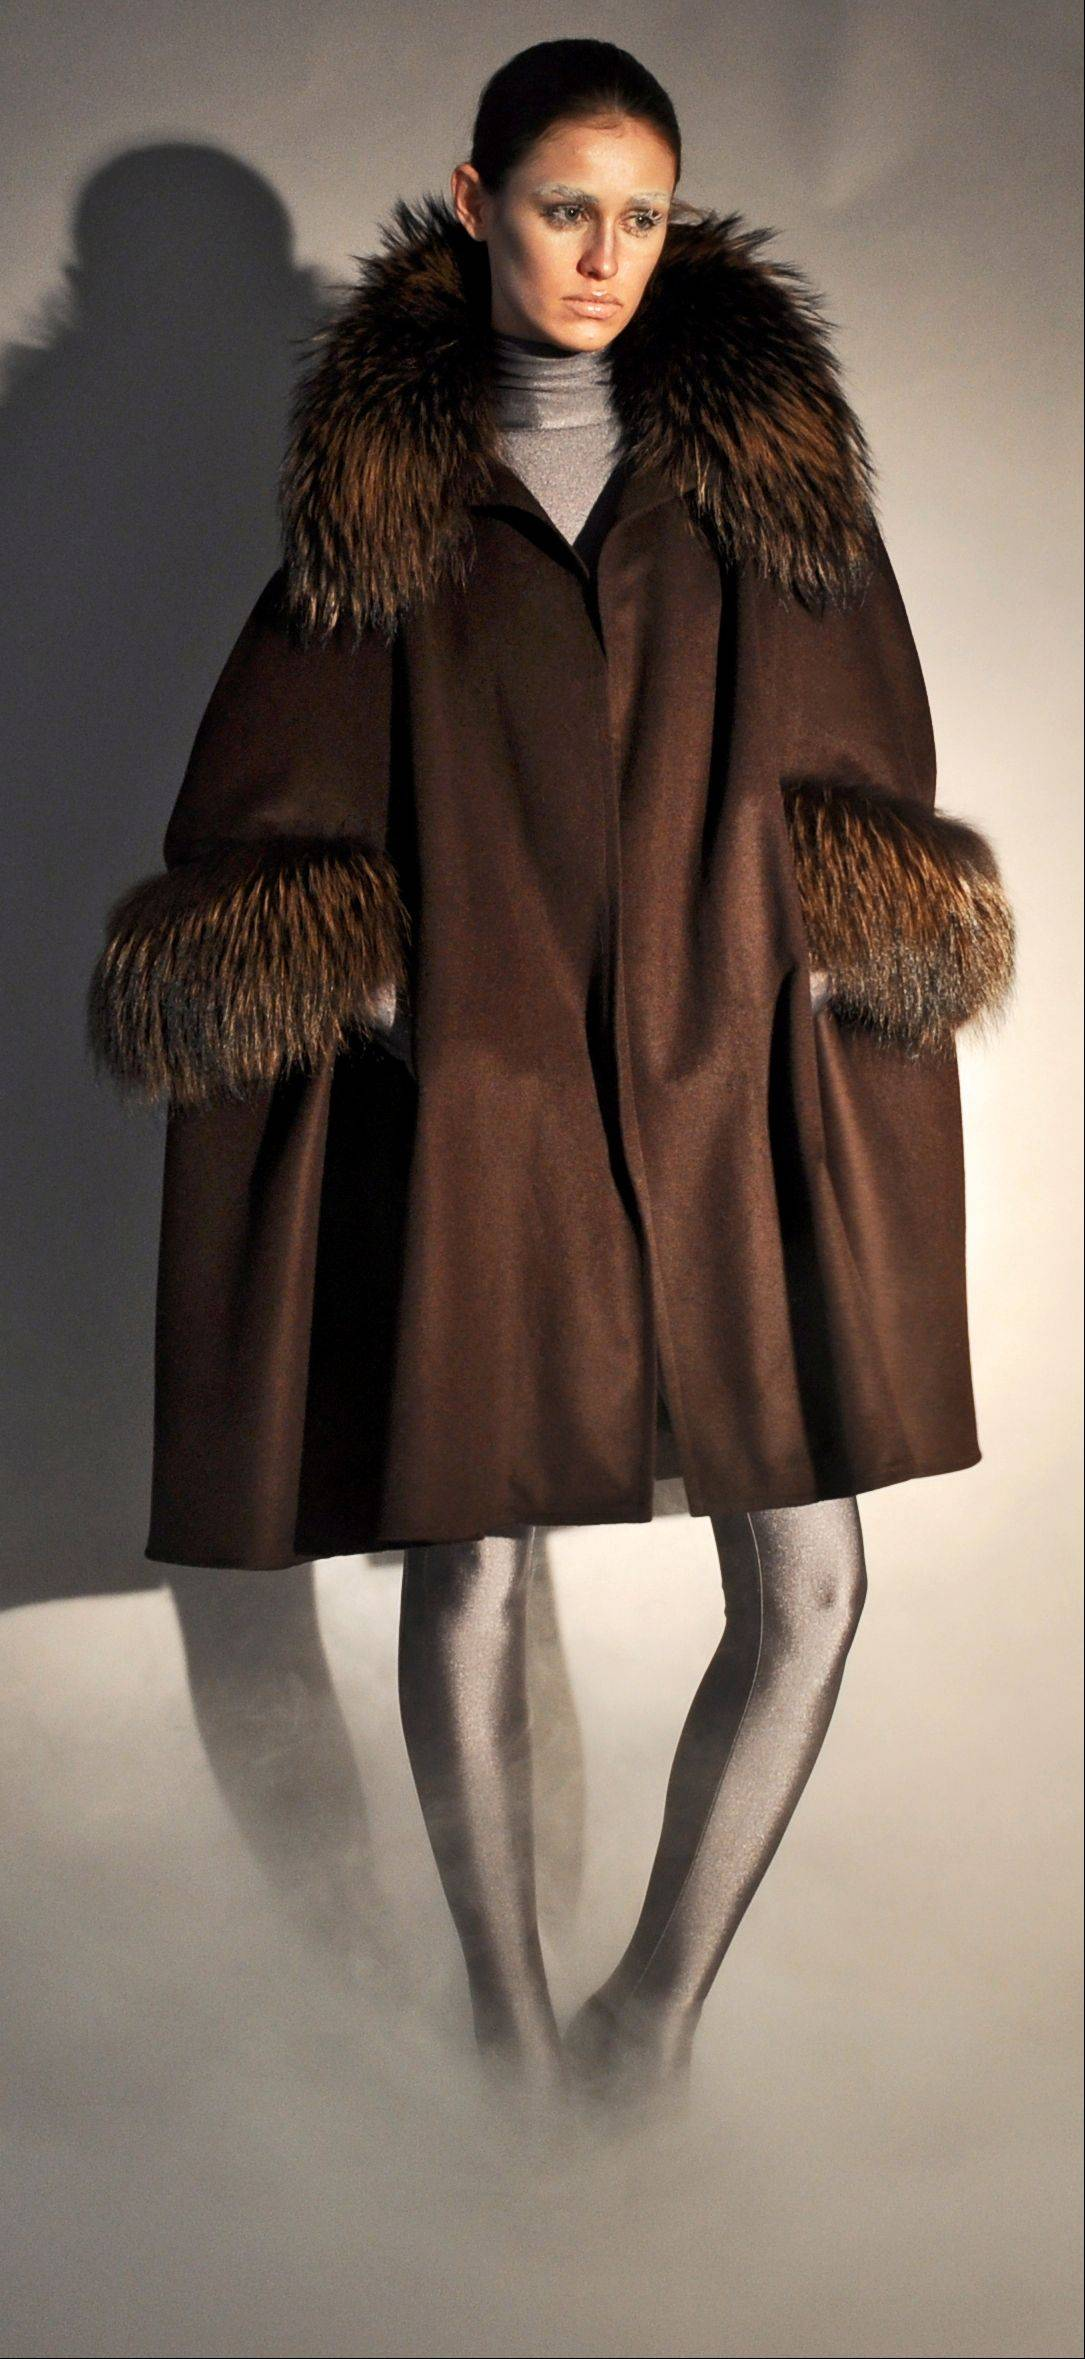 A brown cashmere cape coat with raccoon collar and raccoon arm holes, part of Adrienne Landau's fall 2011 collection,. Women's tastes are becoming more refined and younger customers are warming up to fur amid efforts to market pelts as more humane products. S